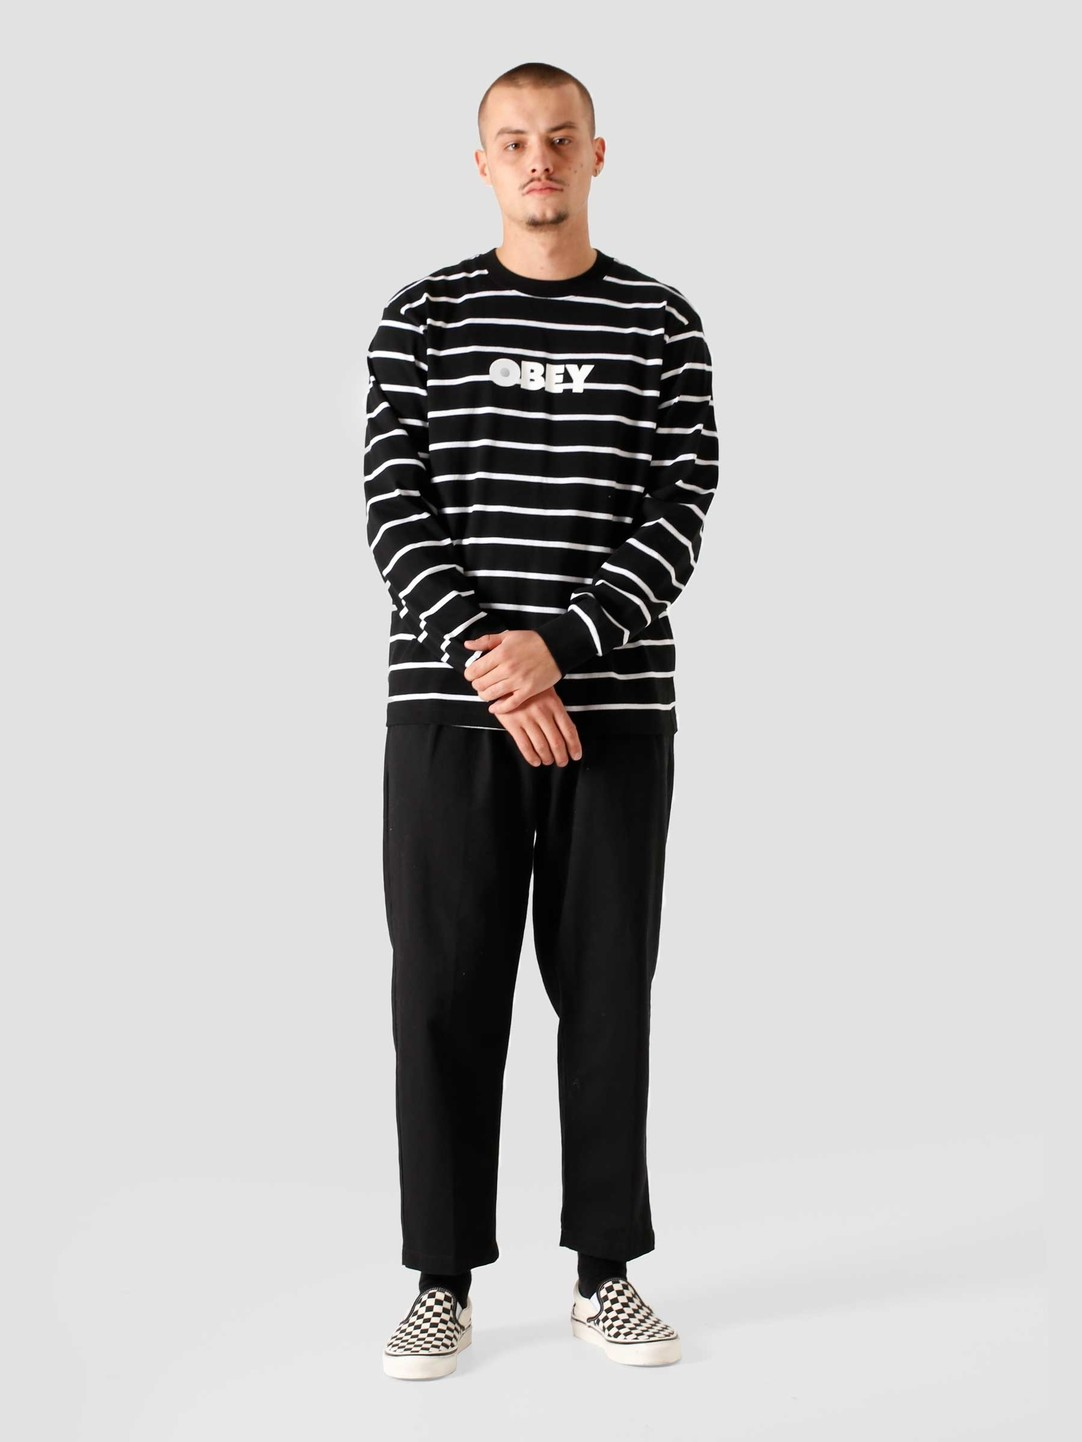 Obey Obey Division Longsleeve Black Multi 131030100BKM